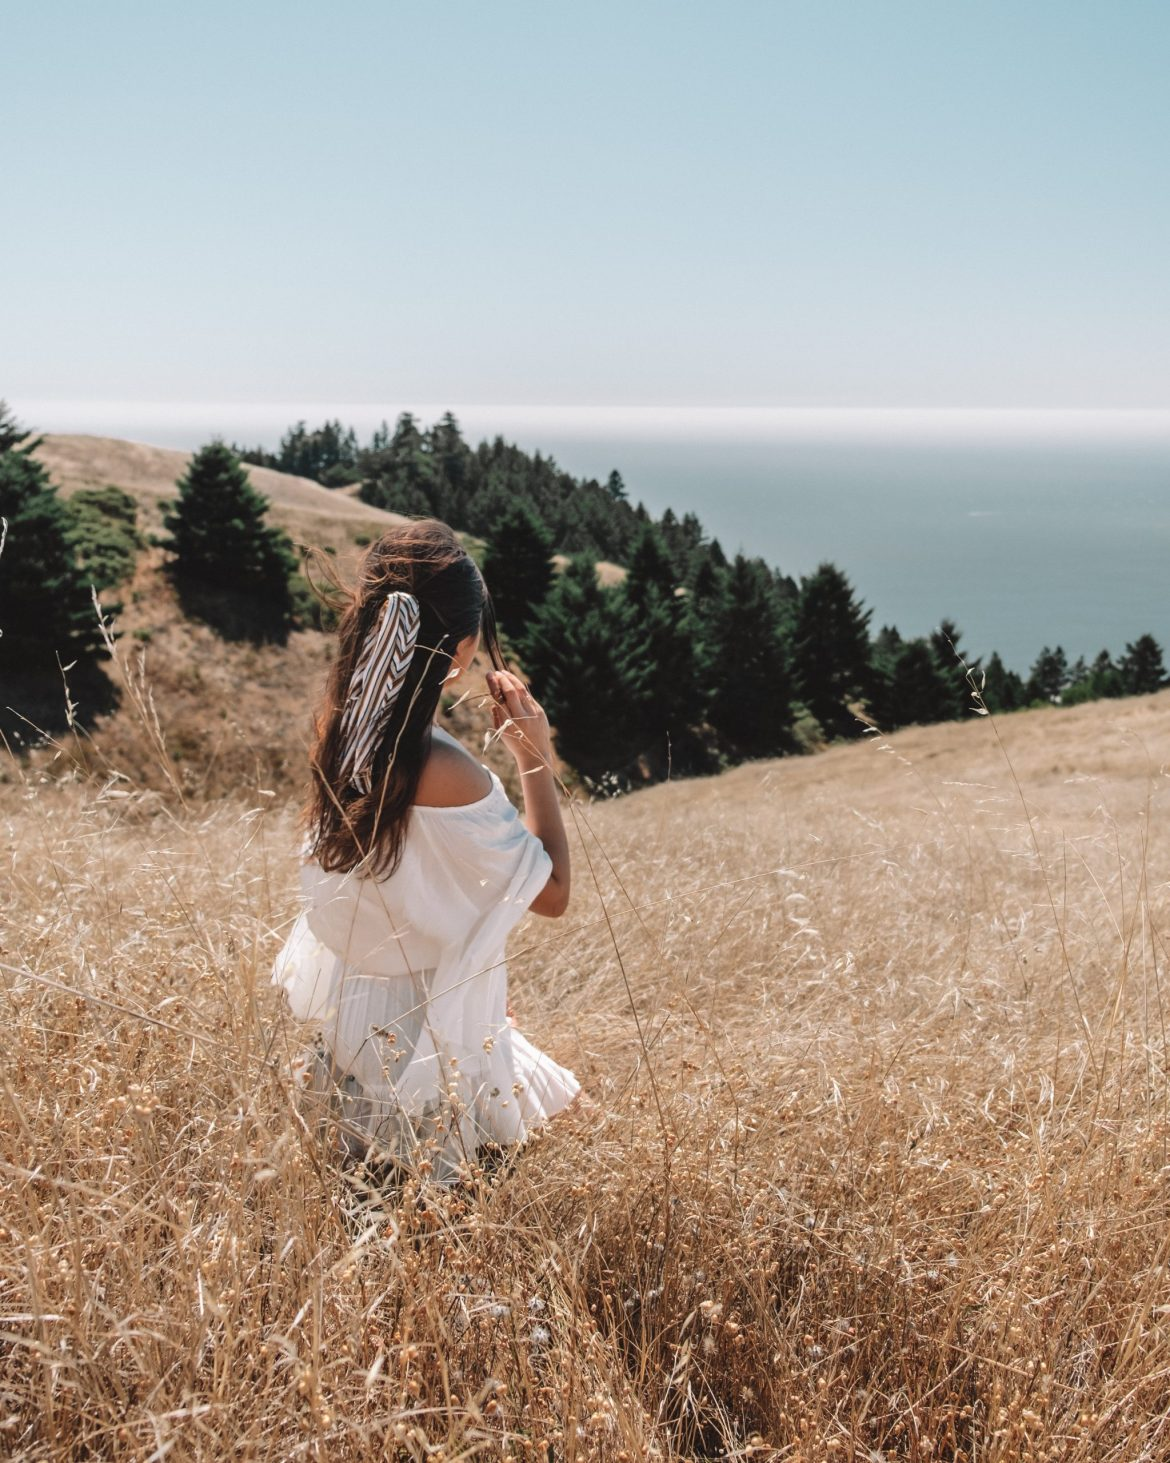 6 Epic Day Trips From San Francisco - Mount Tamalpais, San Francisco day trips, mount tamalpais photography